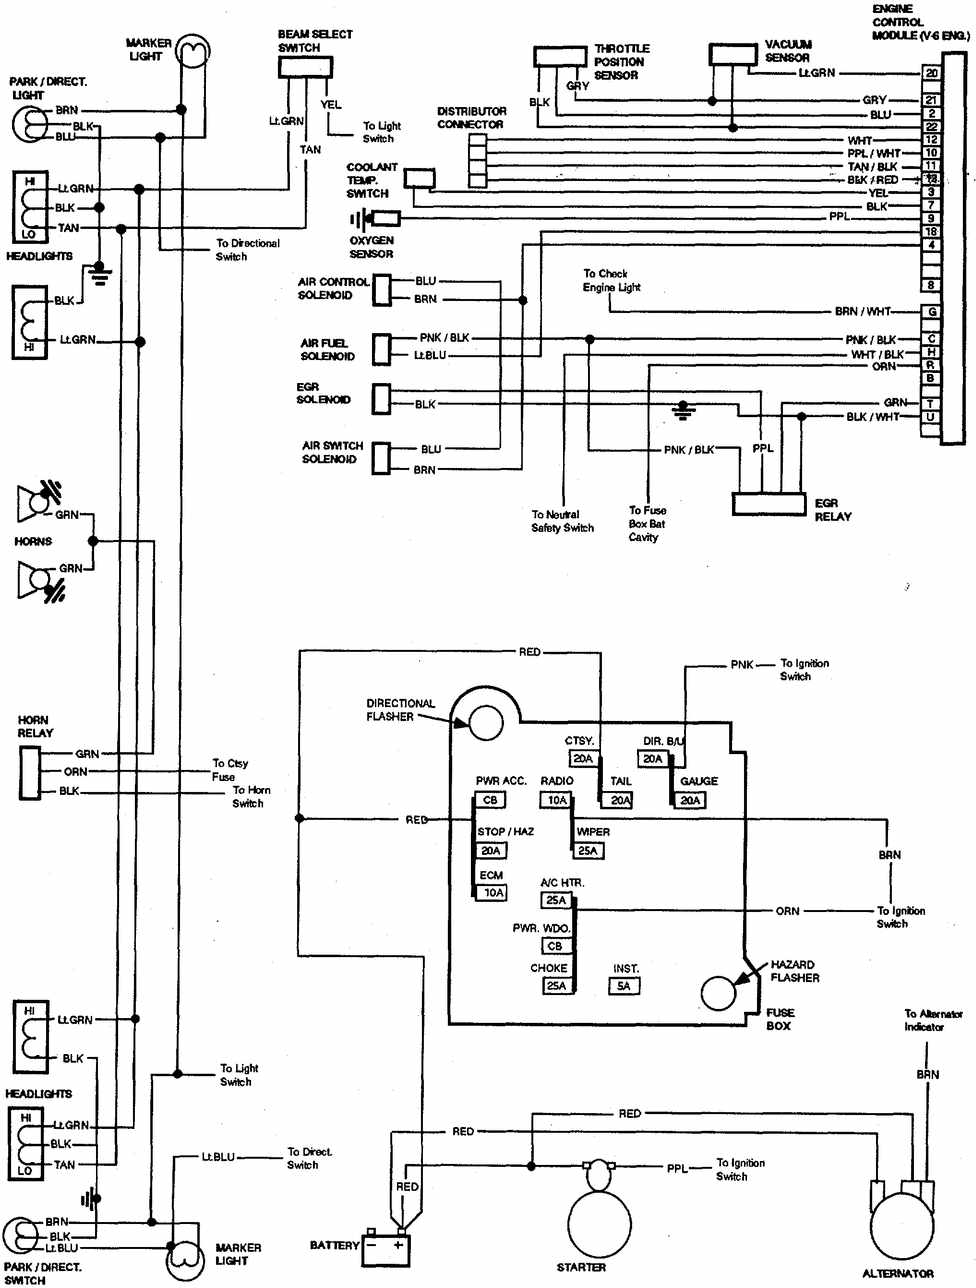 Chevrolet V8 Trucks 1981 1987 Electrical Wiring Diagram